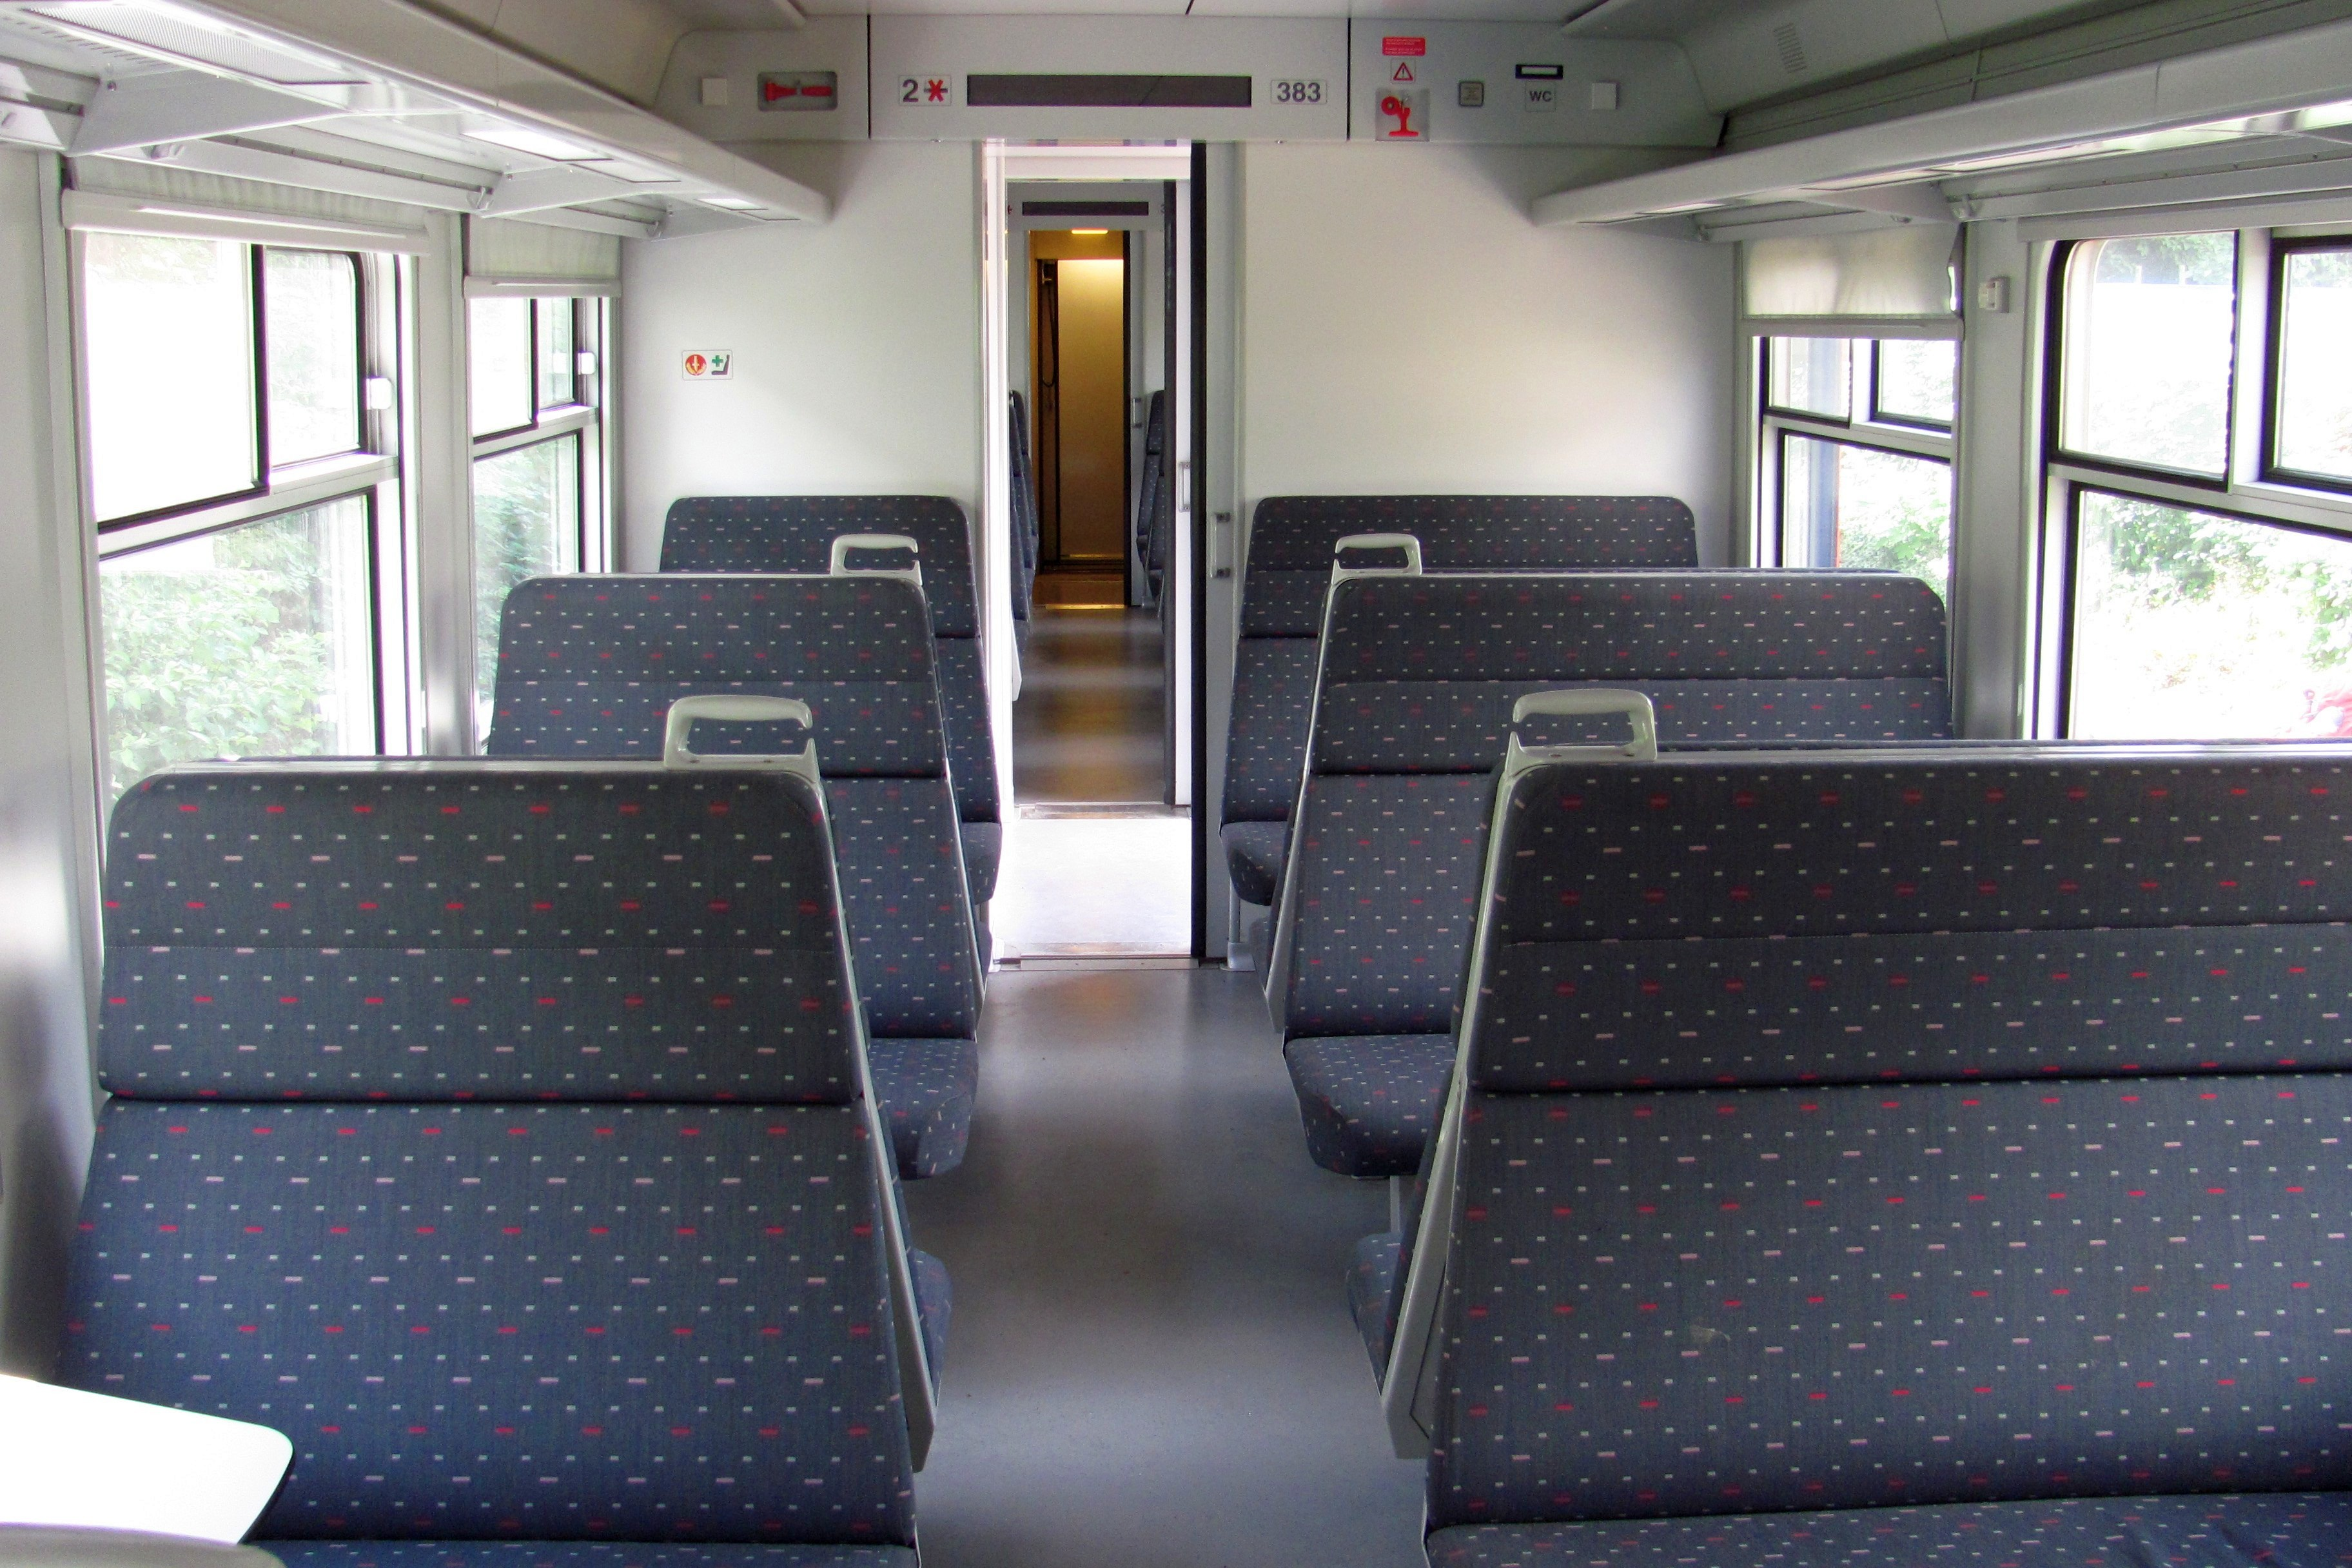 File 12 06 075 nmbs ms80 wikimedia commons - Makers van het interieur ...